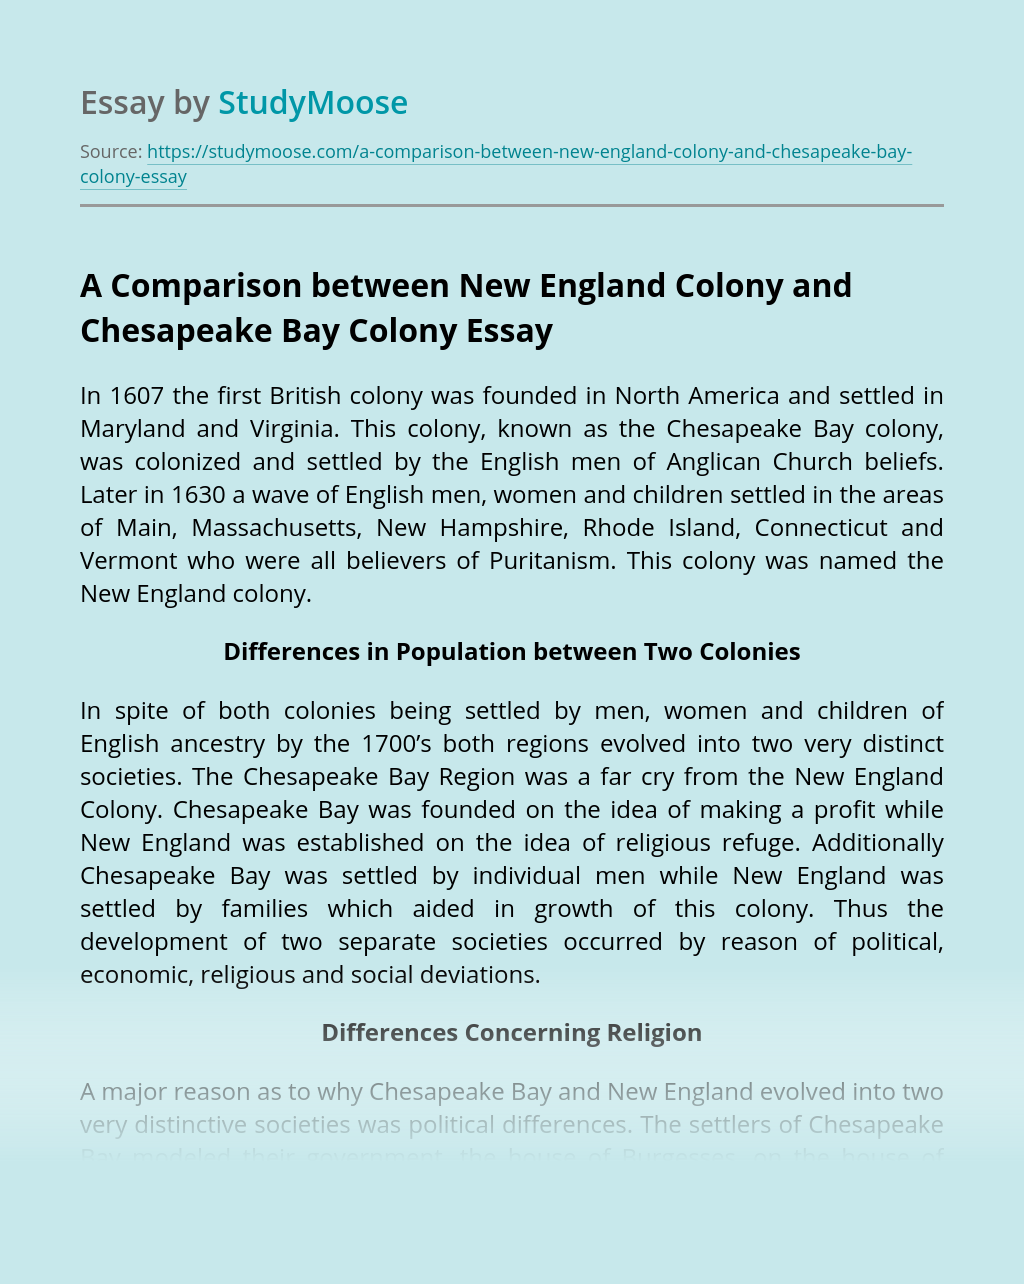 A Comparison between New England Colony and Chesapeake Bay Colony